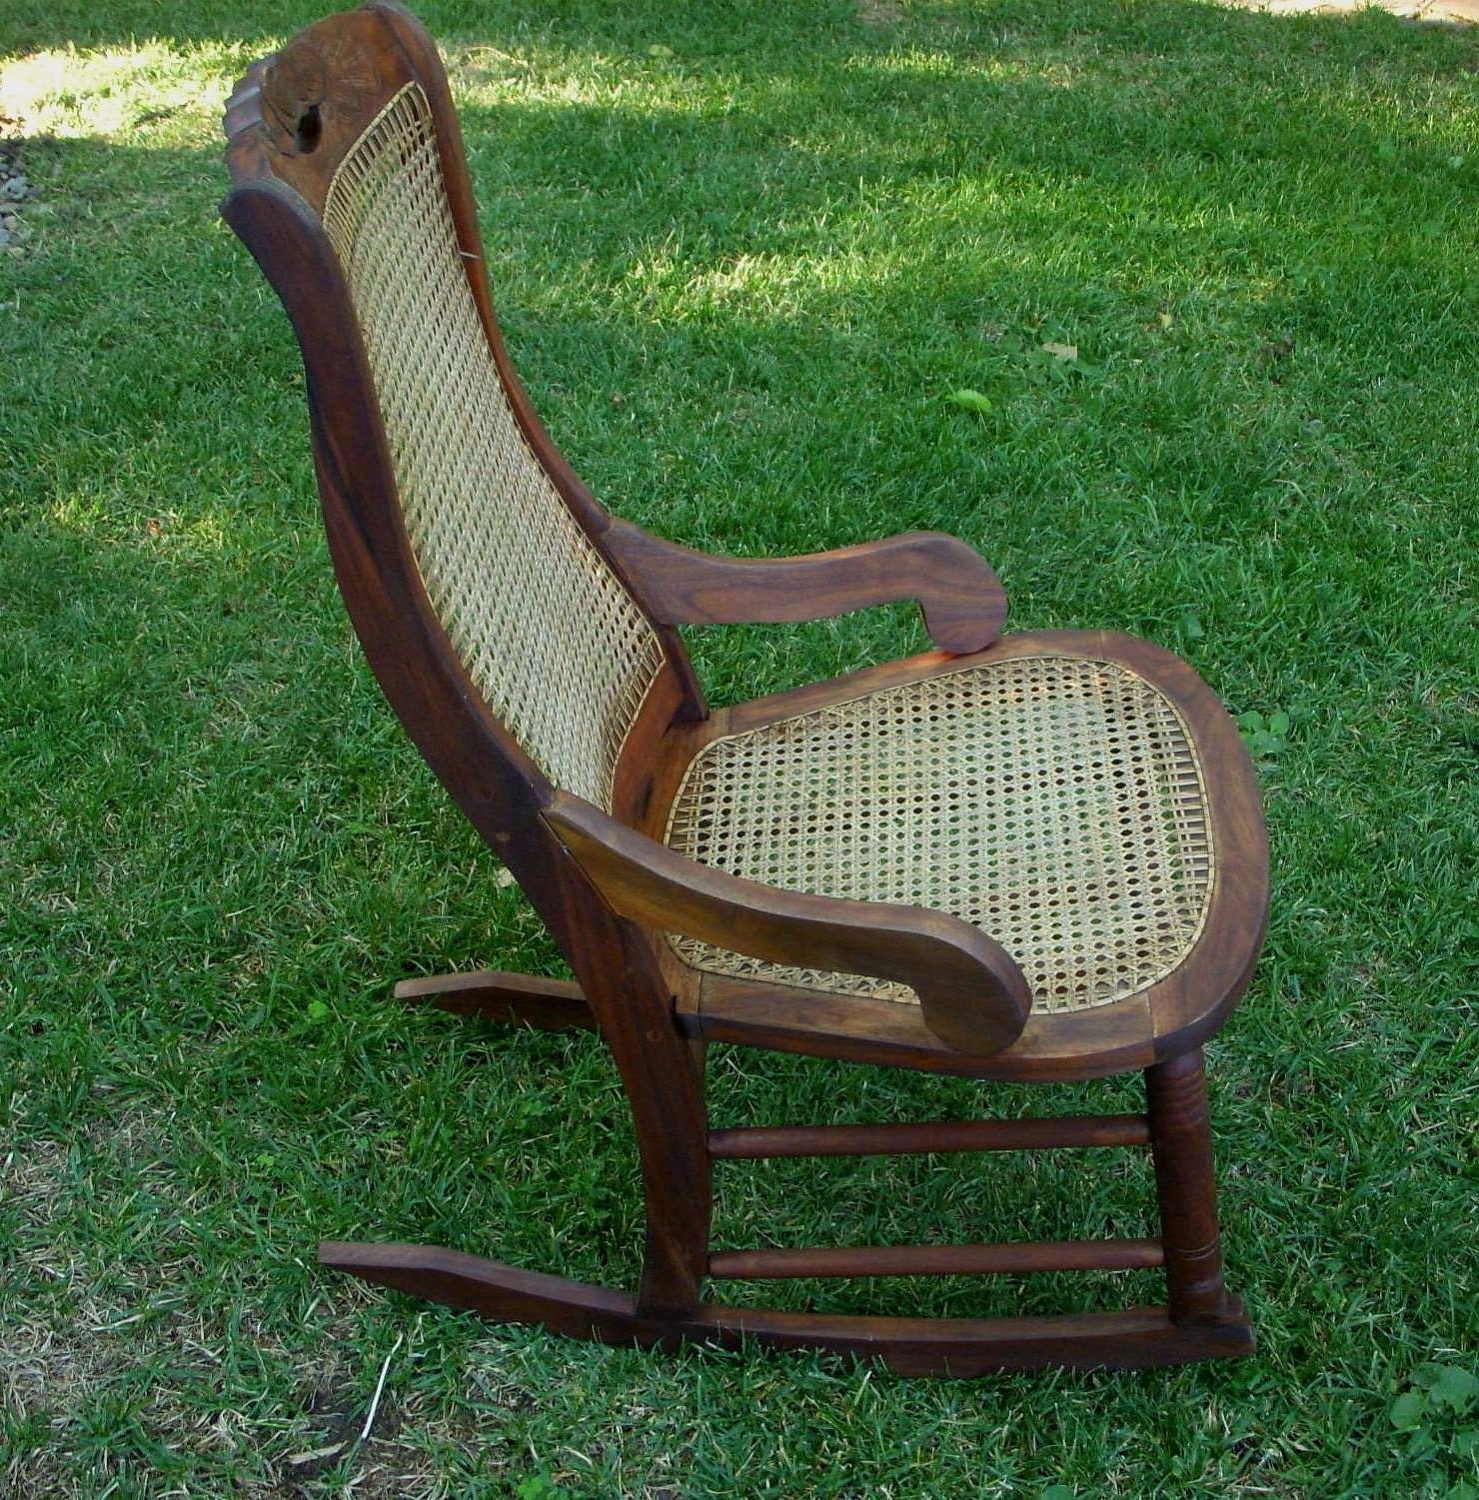 Vintage Wicker Rocking Chairs Intended For Most Recent 20 New Antique Wicker Rocking Chair (View 14 of 20)